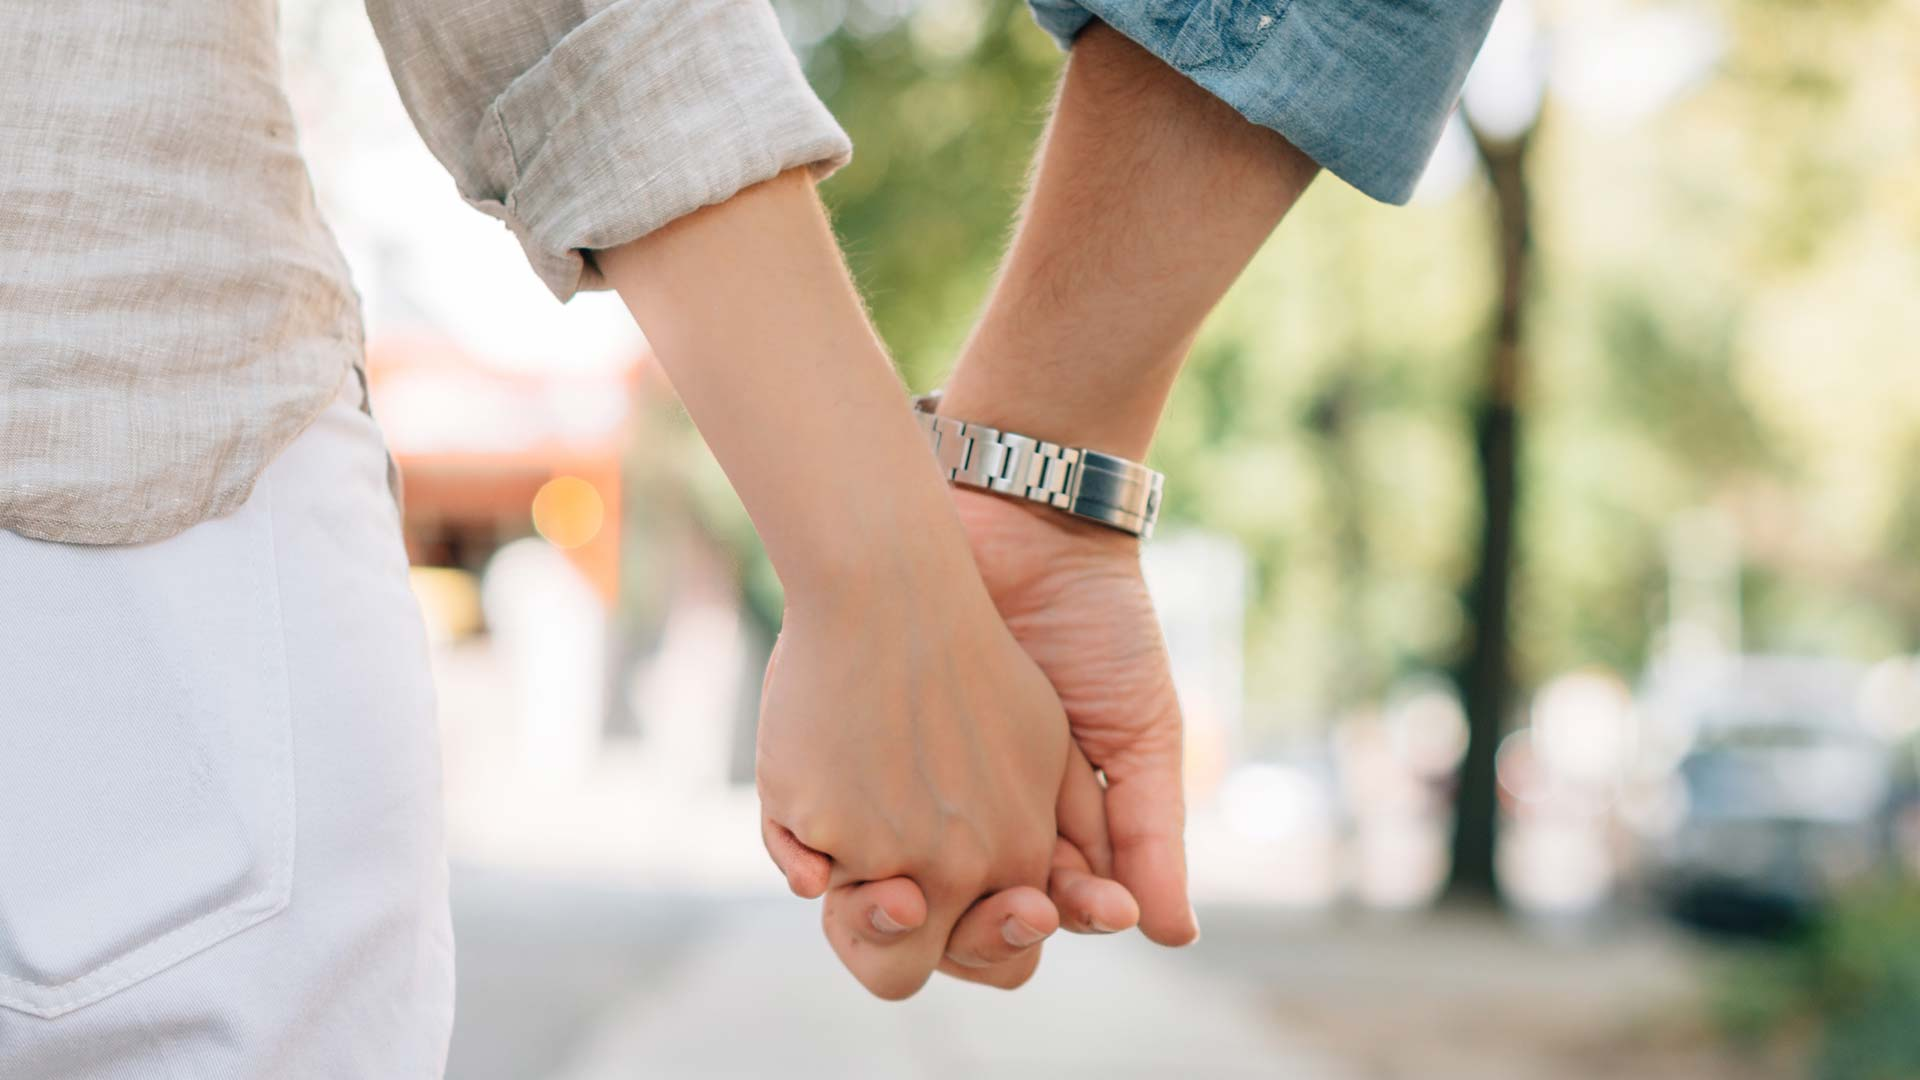 A study suggests having a romantic partner present can reduce stress response.